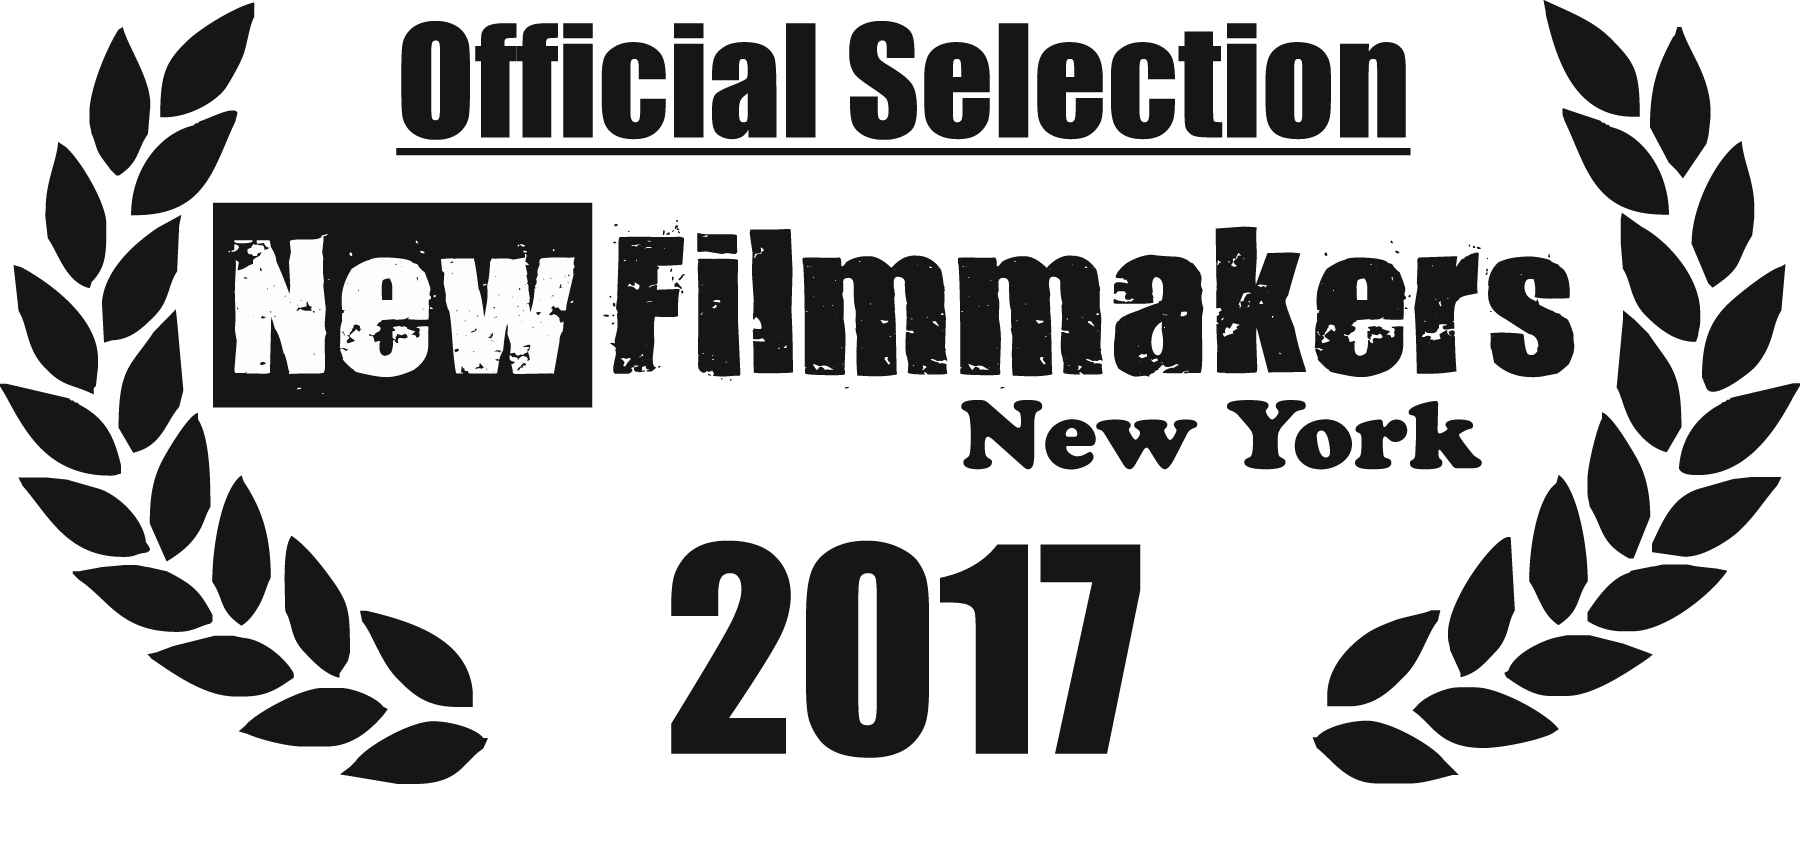 NewFilmmakers New York - Baggage was featured the